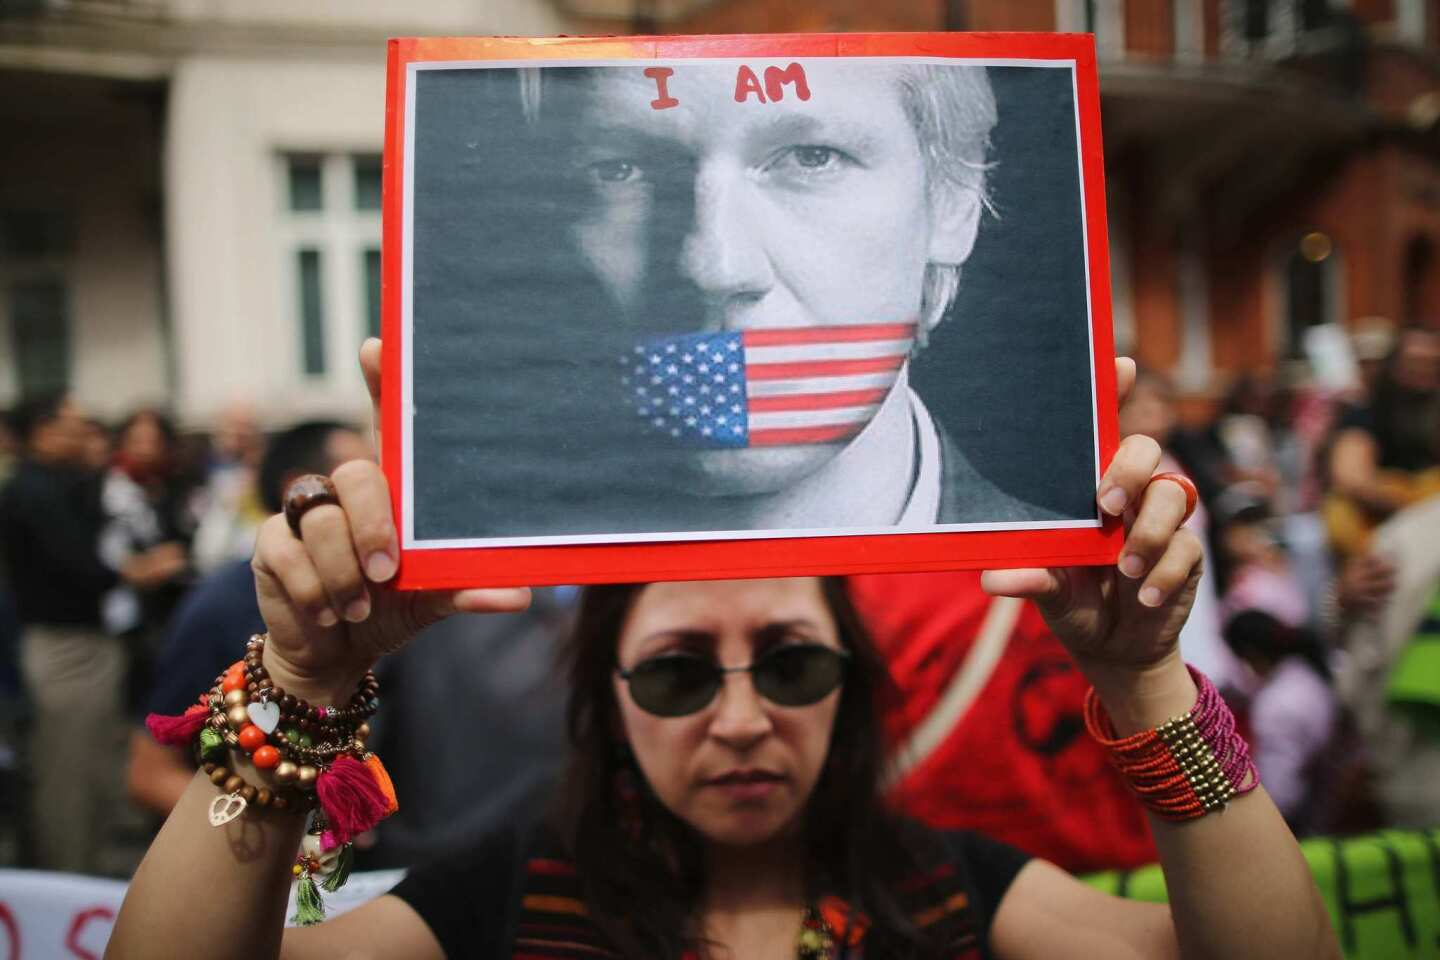 A Julian Assange supporter holds a sign outside the Ecuadorean Embassy in London in August 2012, a few weeks after Assange took refuge there.